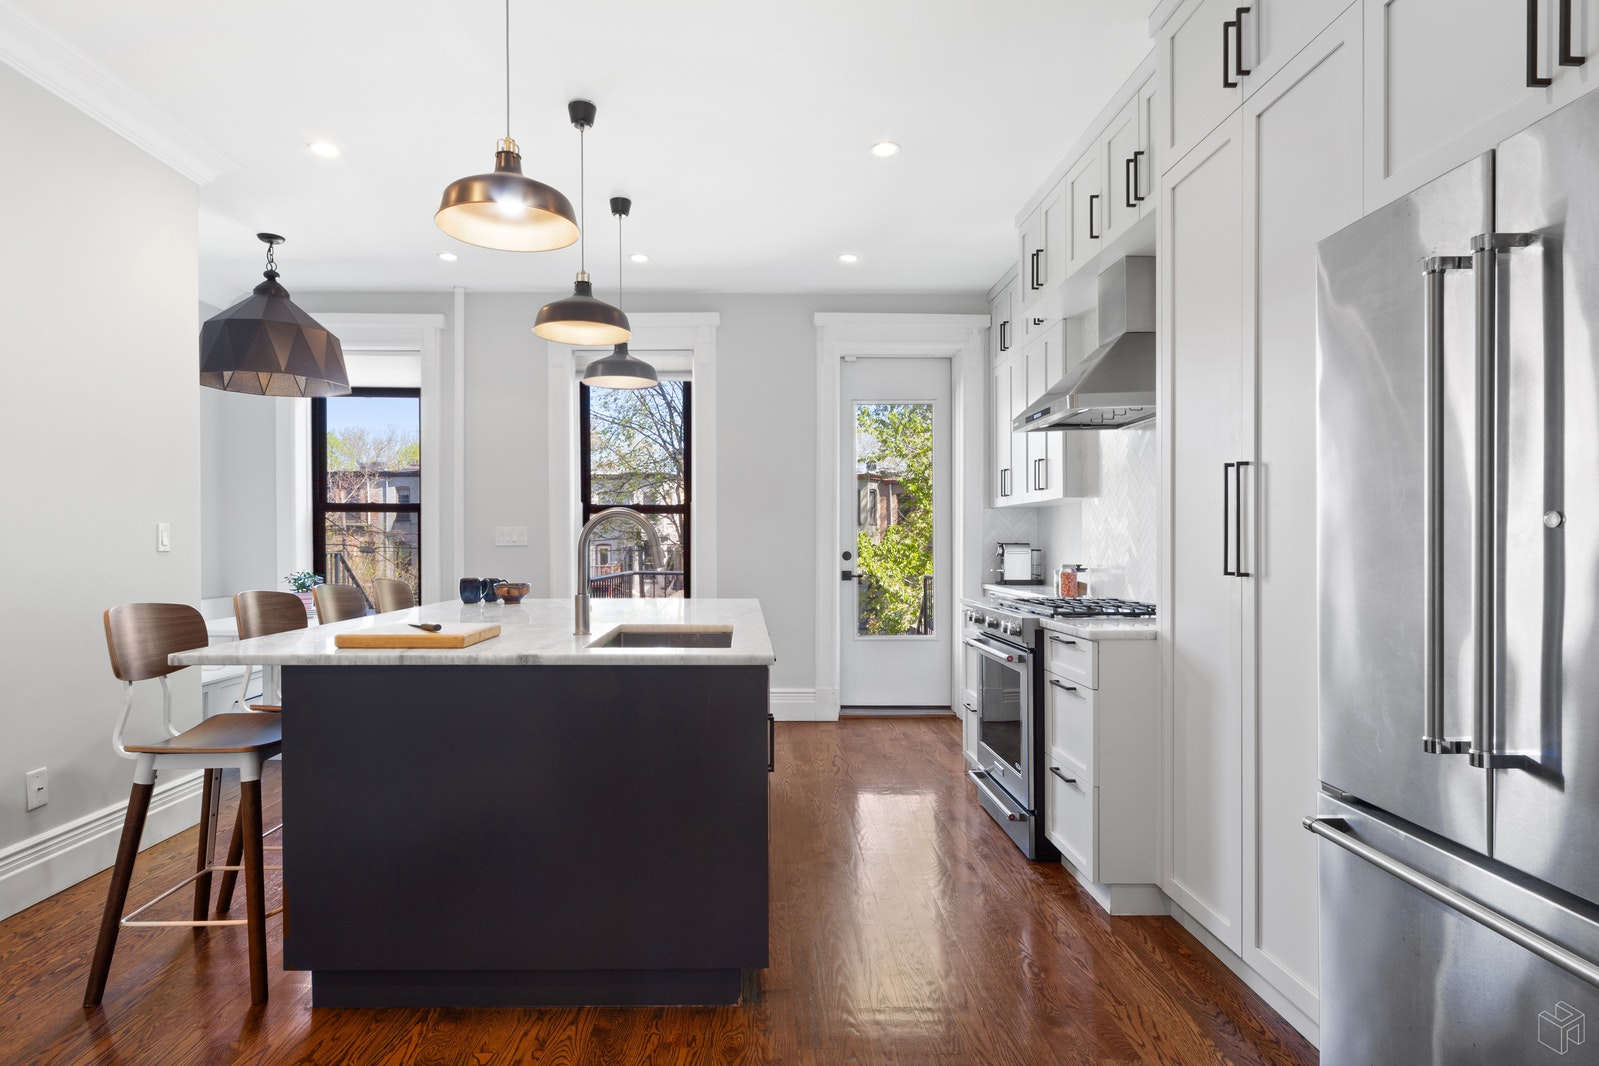 695 STERLING PLACE, Crown Heights, $2,195,000, Web #: 19568397